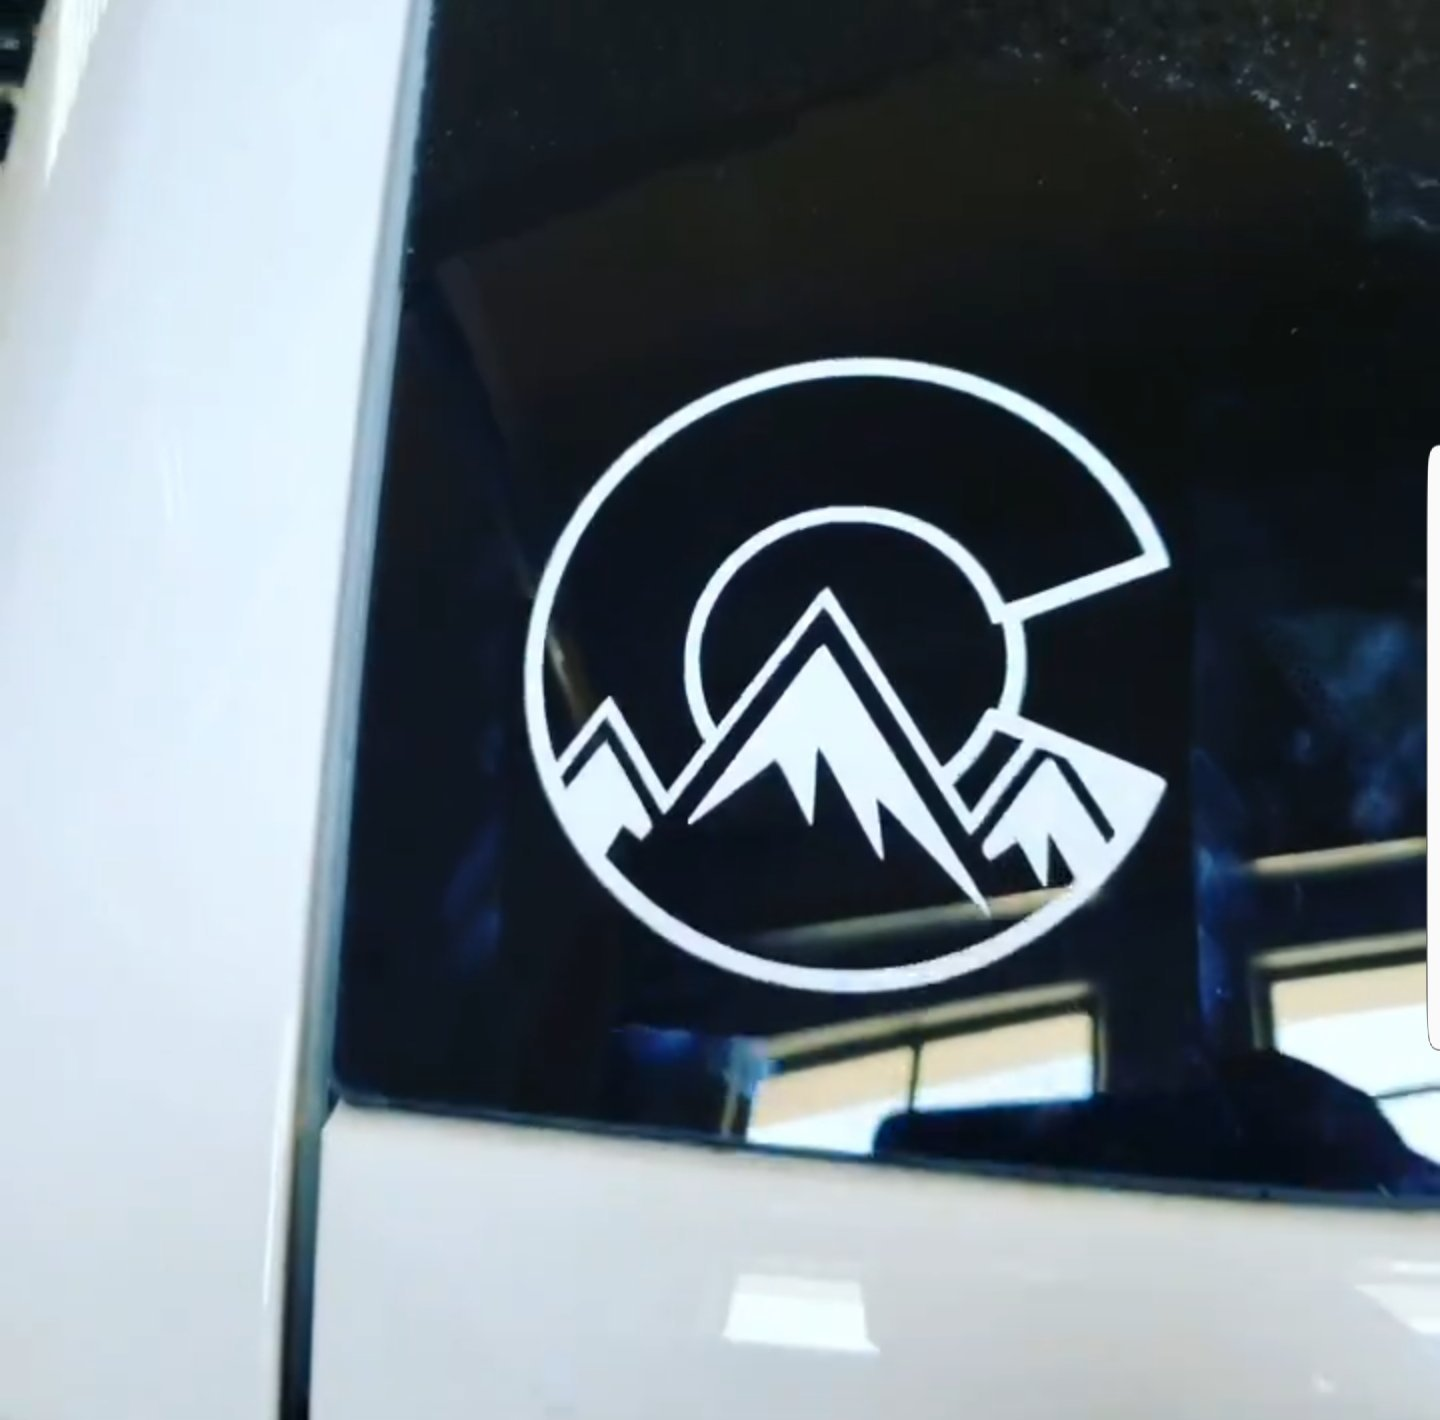 Bumper /& Car Window Sticker for Cars Trucks and More DCL1197 4.75 x 5 inches Fanbuild Colorado Rocky Mountains White Vinyl Decal Laptops